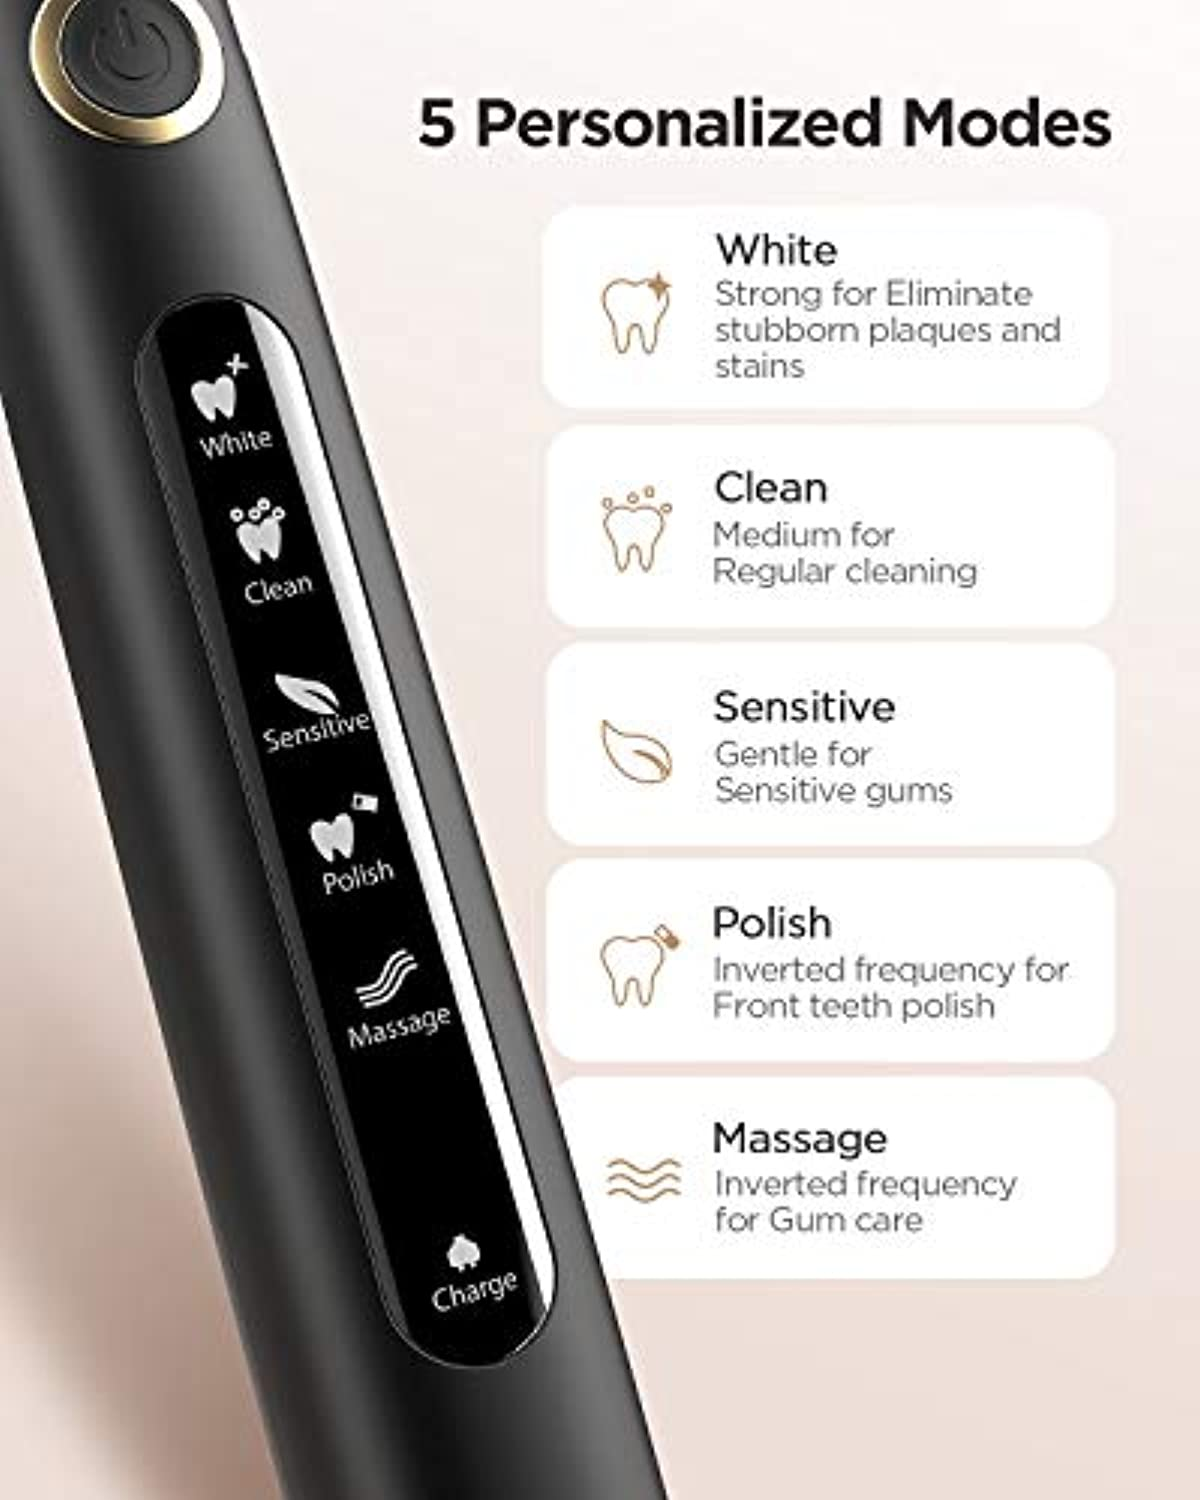 Classier: Buy Fairywill Fairywill Electric Toothbrush Powerful Sonic Cleaning - ADA Accepted Rechargeable Toothbrush with Timer, 5 Modes, 3 Brush Heads, 4 Hr Charge Last 30 Days Whitening Toothbrush for Adults and Kids